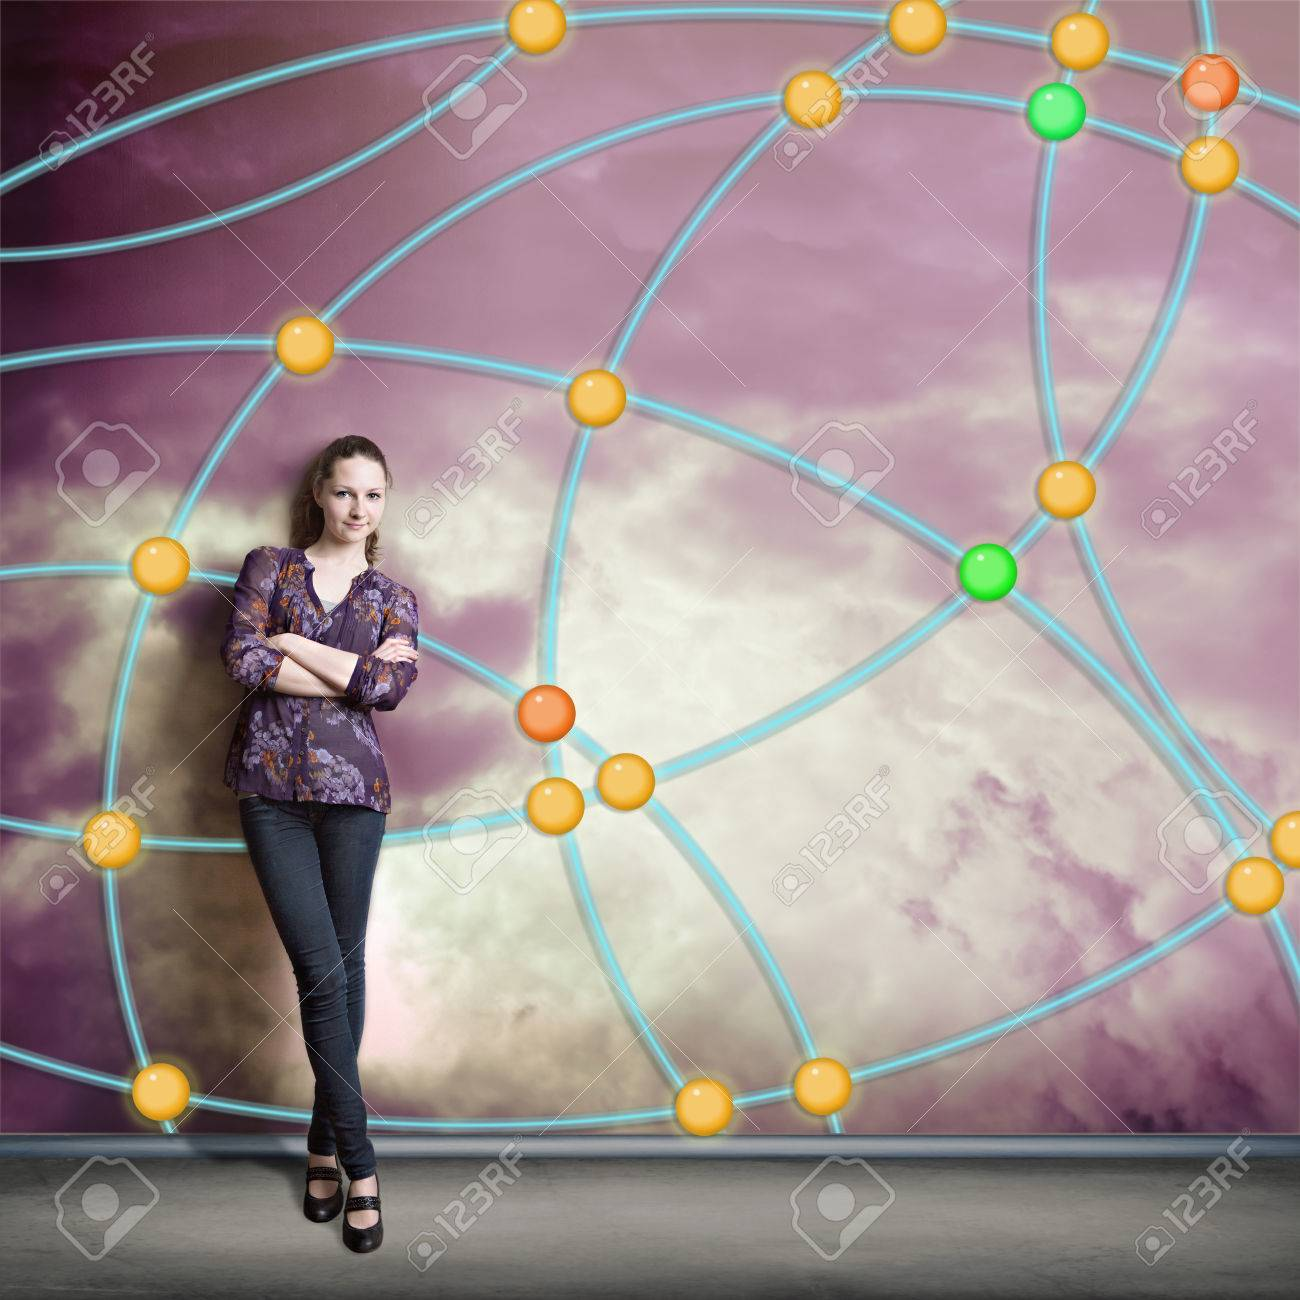 A Young Woman At Wall With Social Network Schematic Diagram Stock Photo 47693296